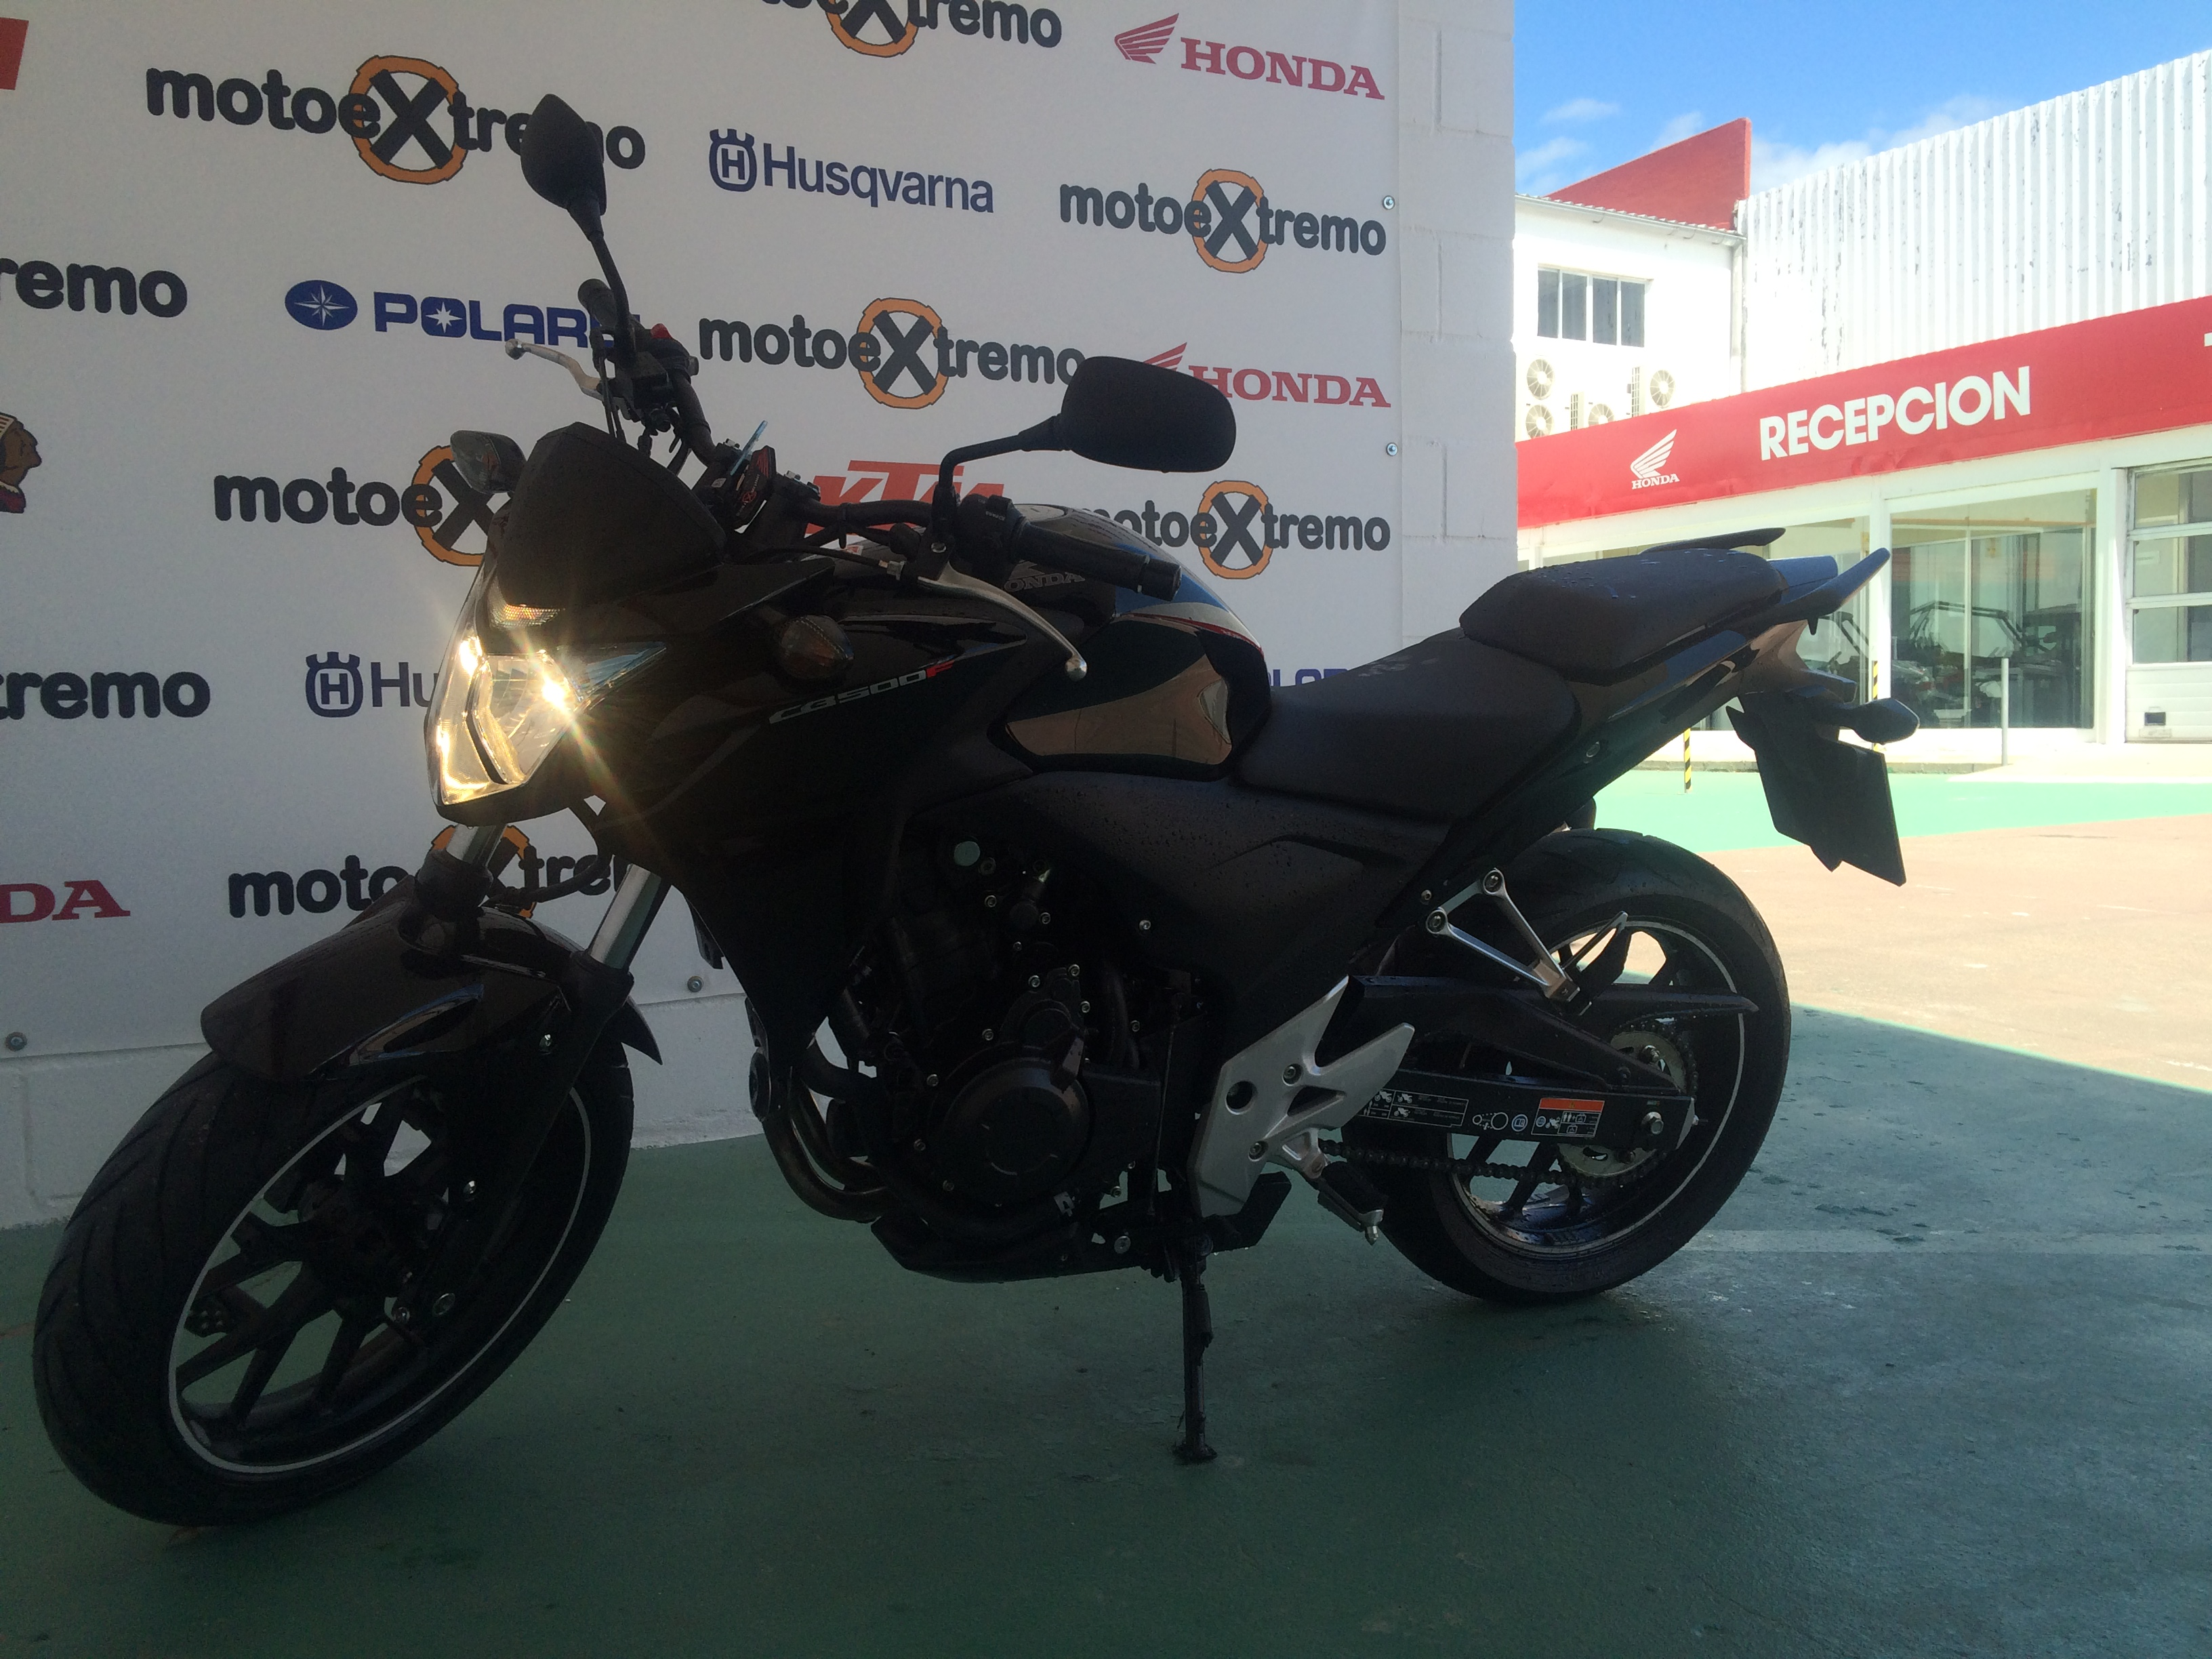 Honda Selection - Motos de ocasión